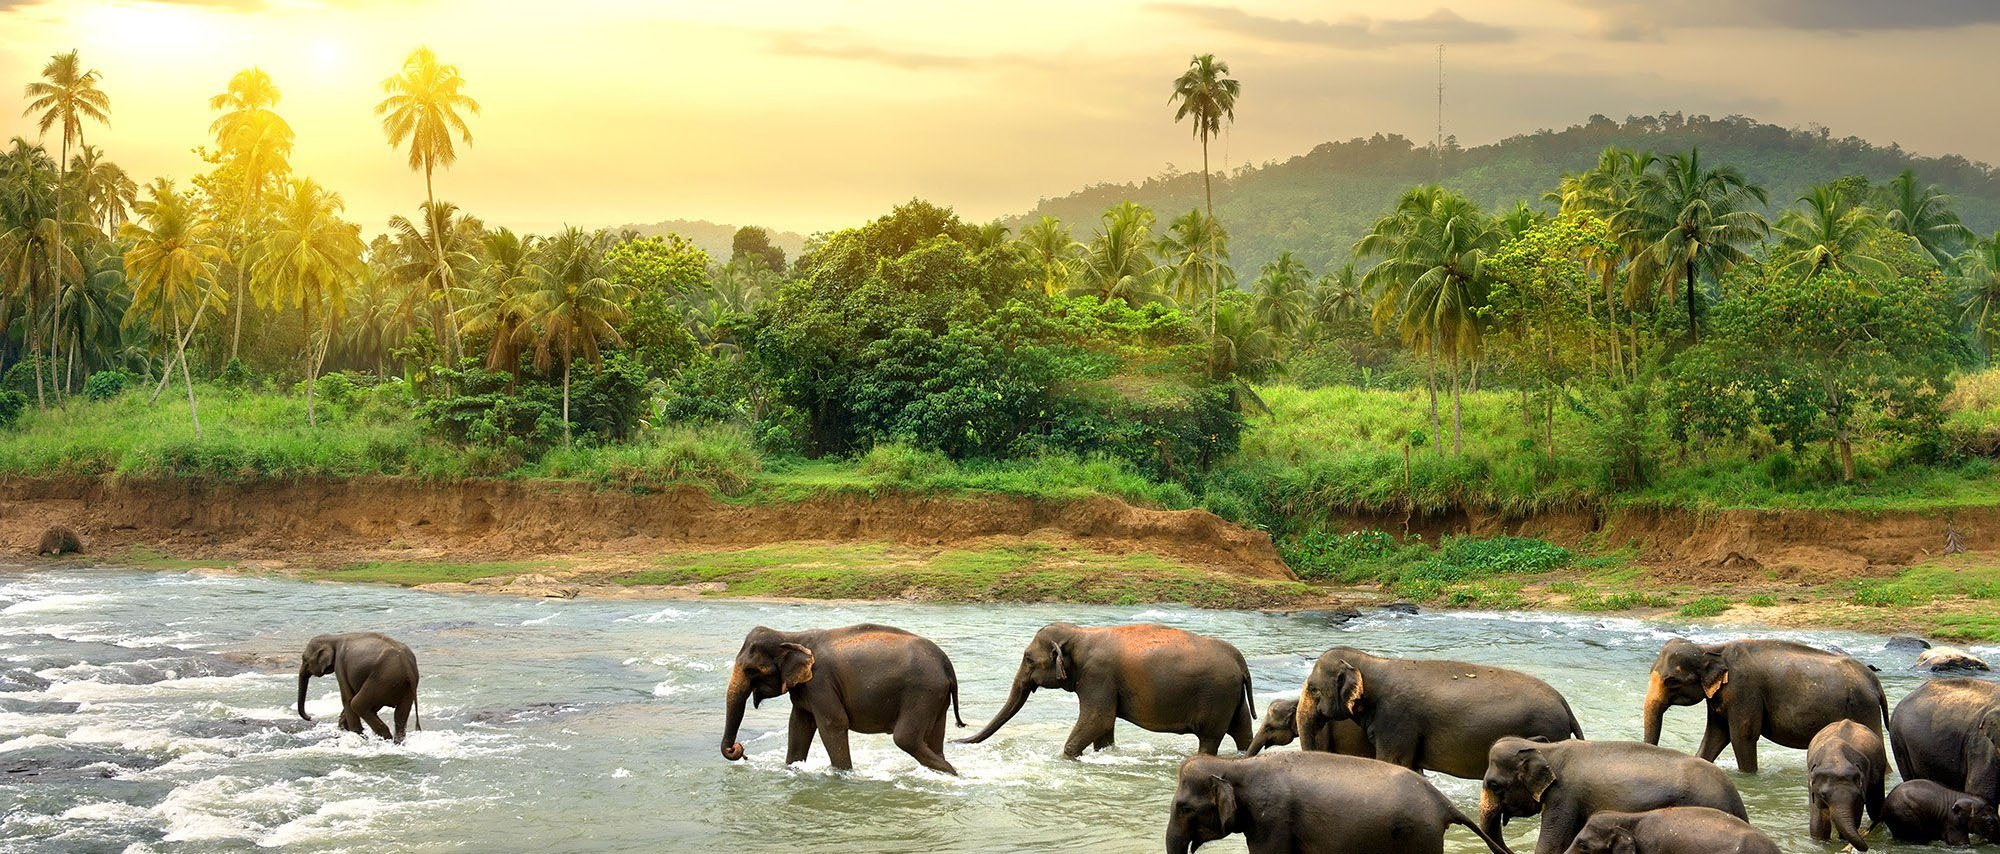 exotic sri lanka - FEBRUARY 21 - MARCH 7, 2020